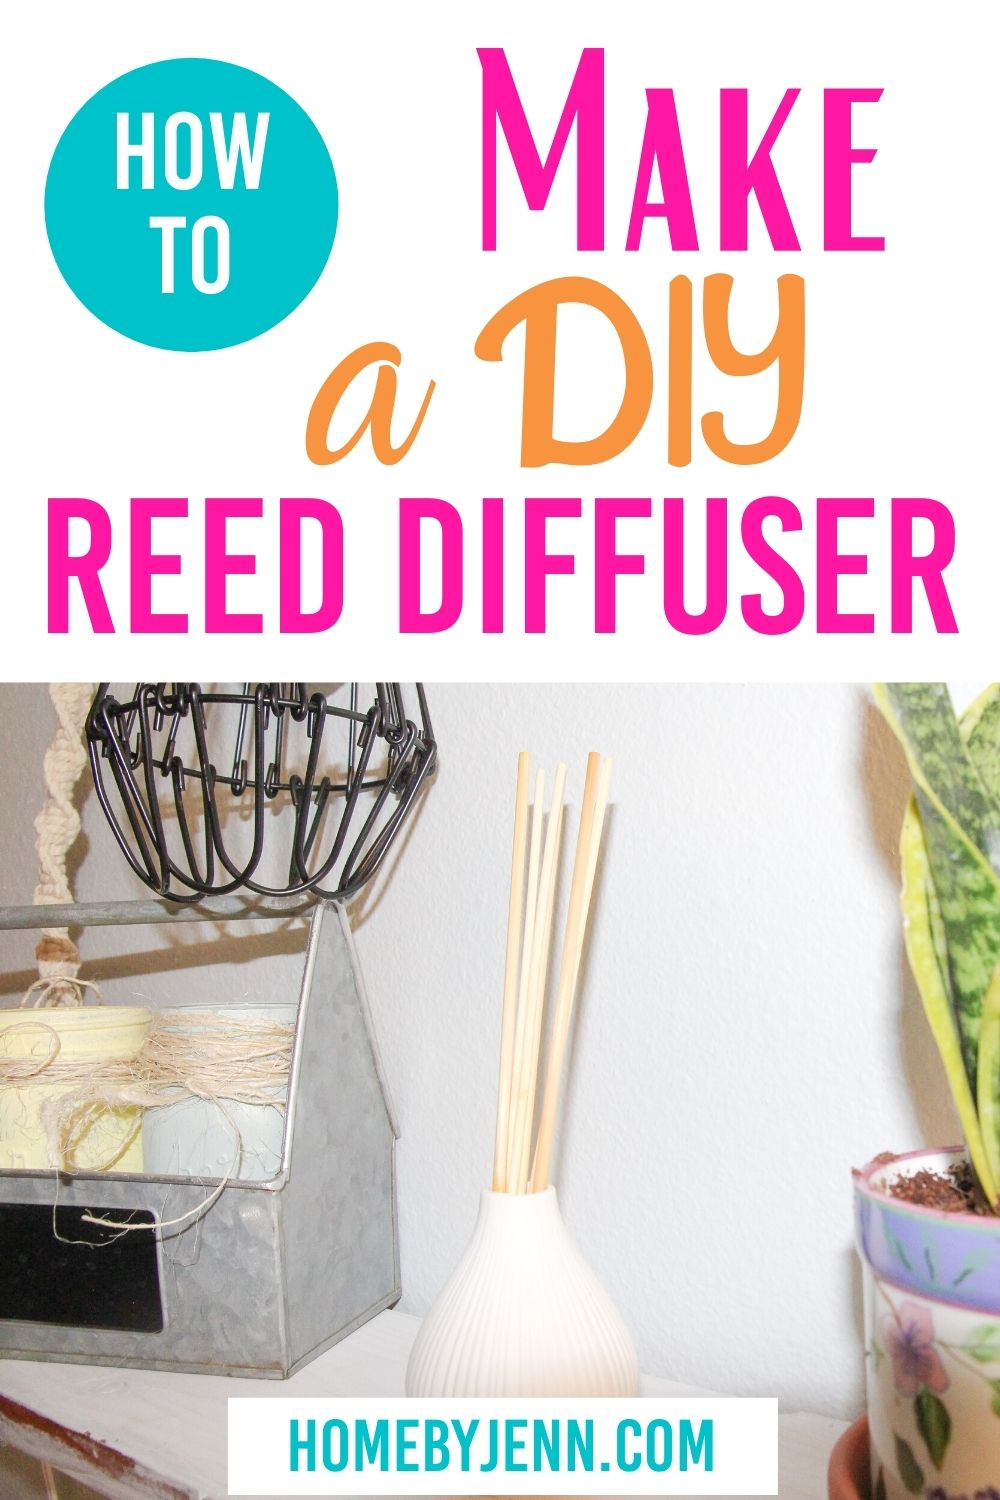 Learn how to make a reed diffuser. This simple DIY reed diffuser tutorial is a very inexpensive project that you can have completed in about 5 minutes. via @homebyjenn